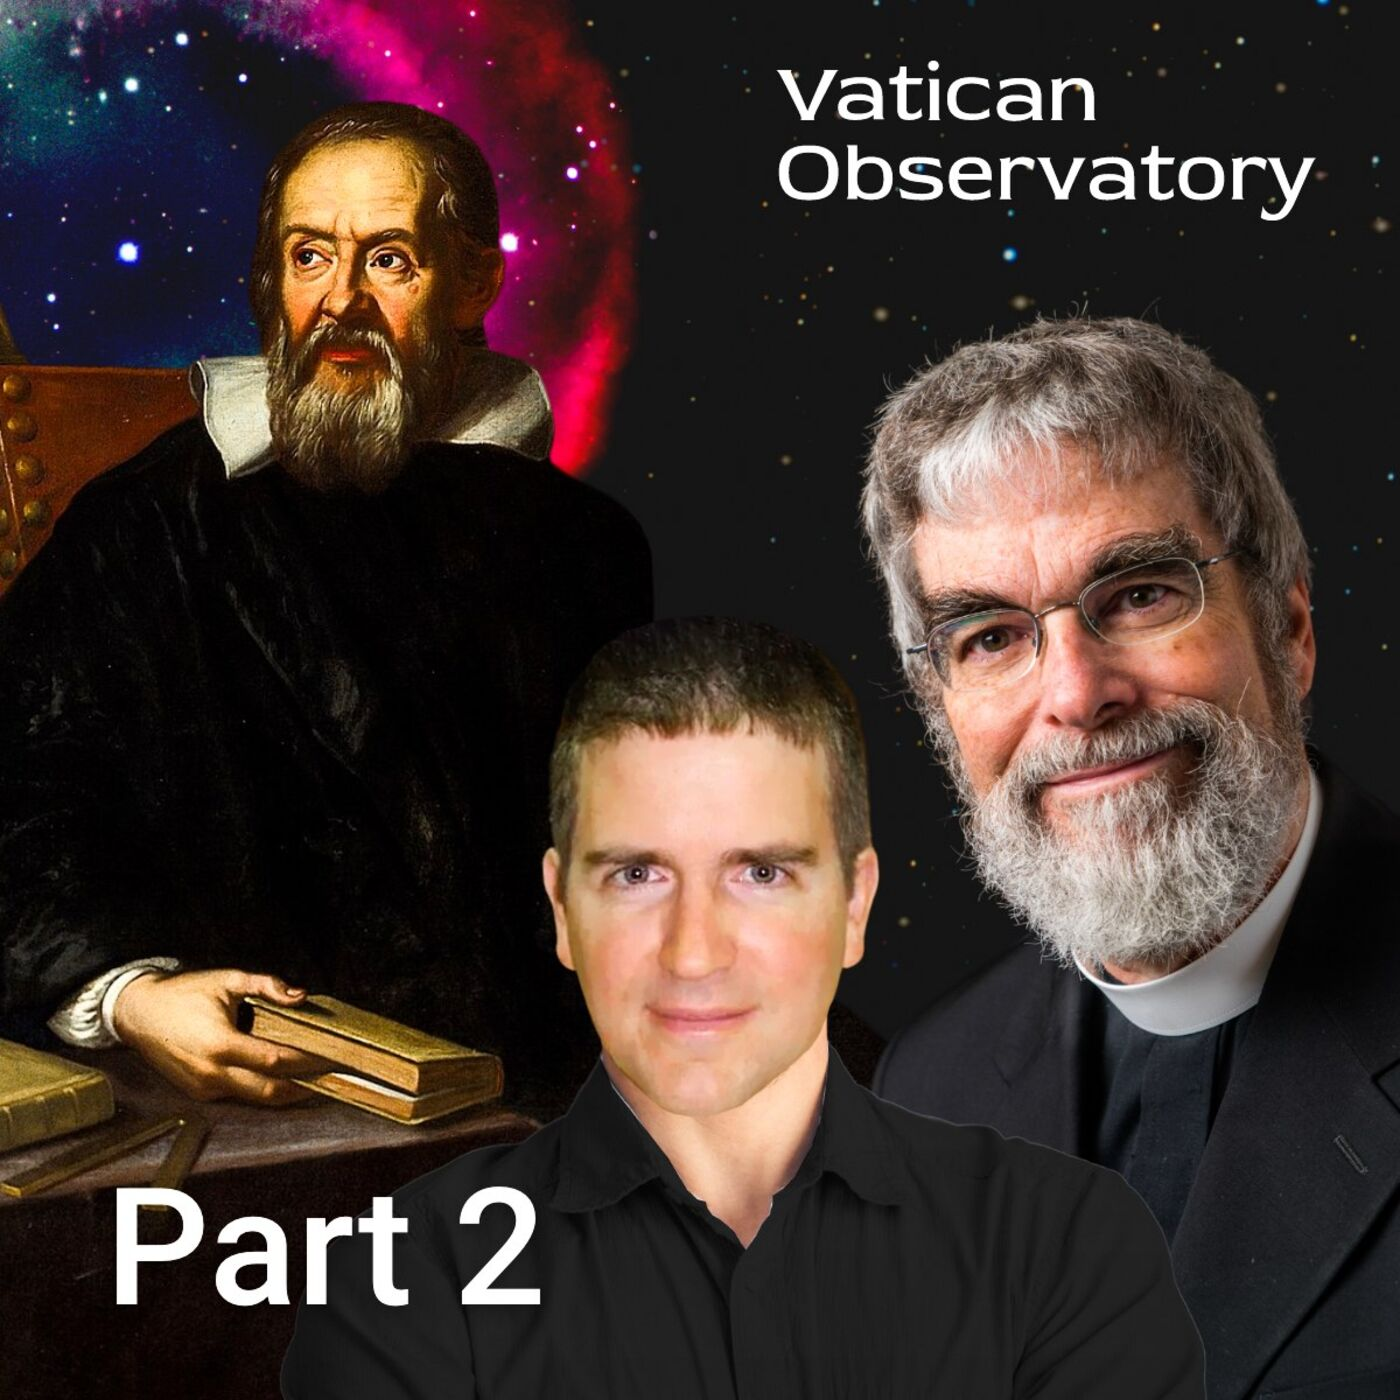 Galileo: The Real Story (Part 2)